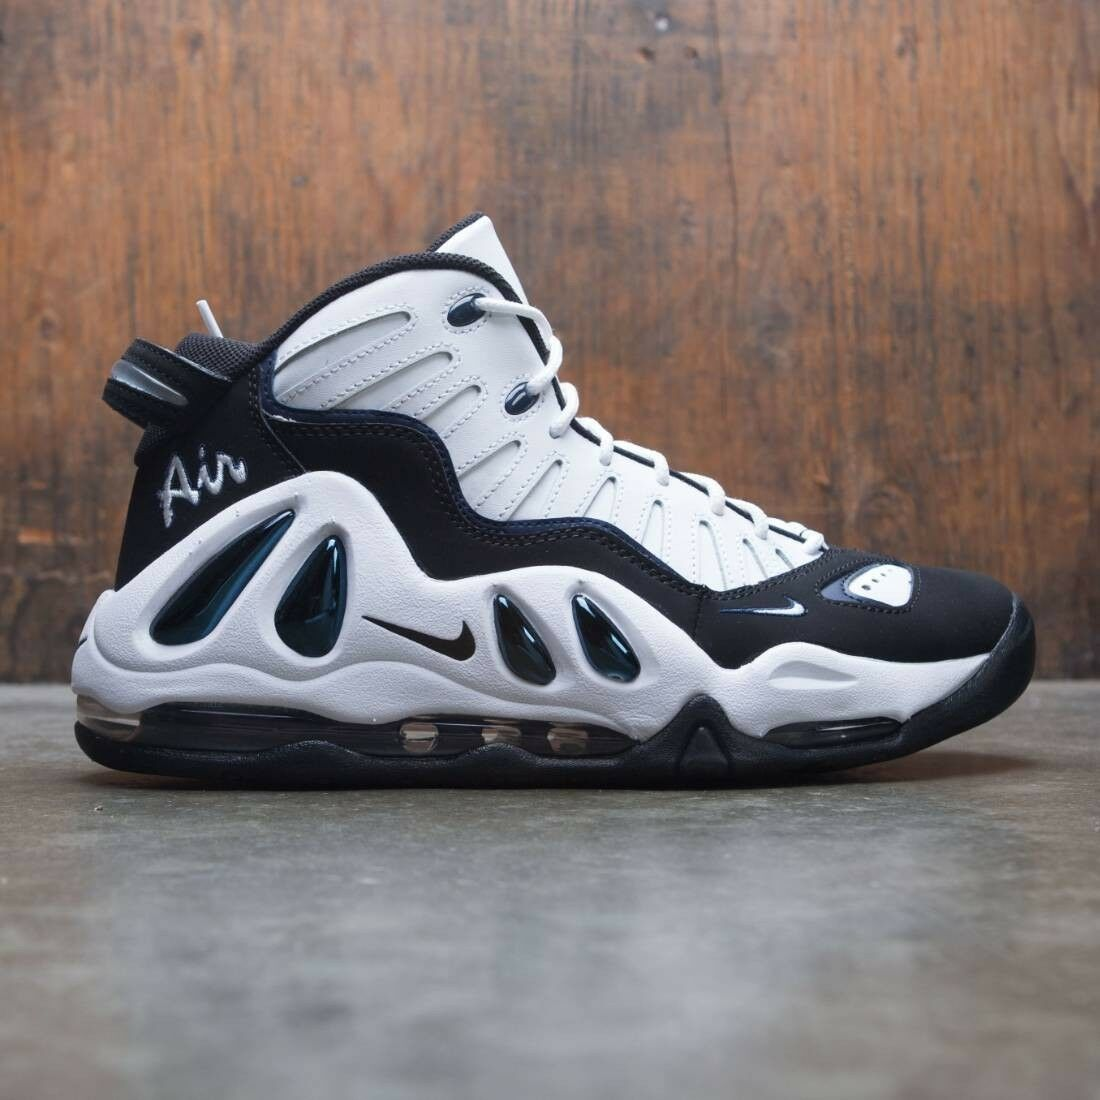 2018 Nike Air Uptempo 97 White College Navy Size 14. 399207-101 Jordan Pippen